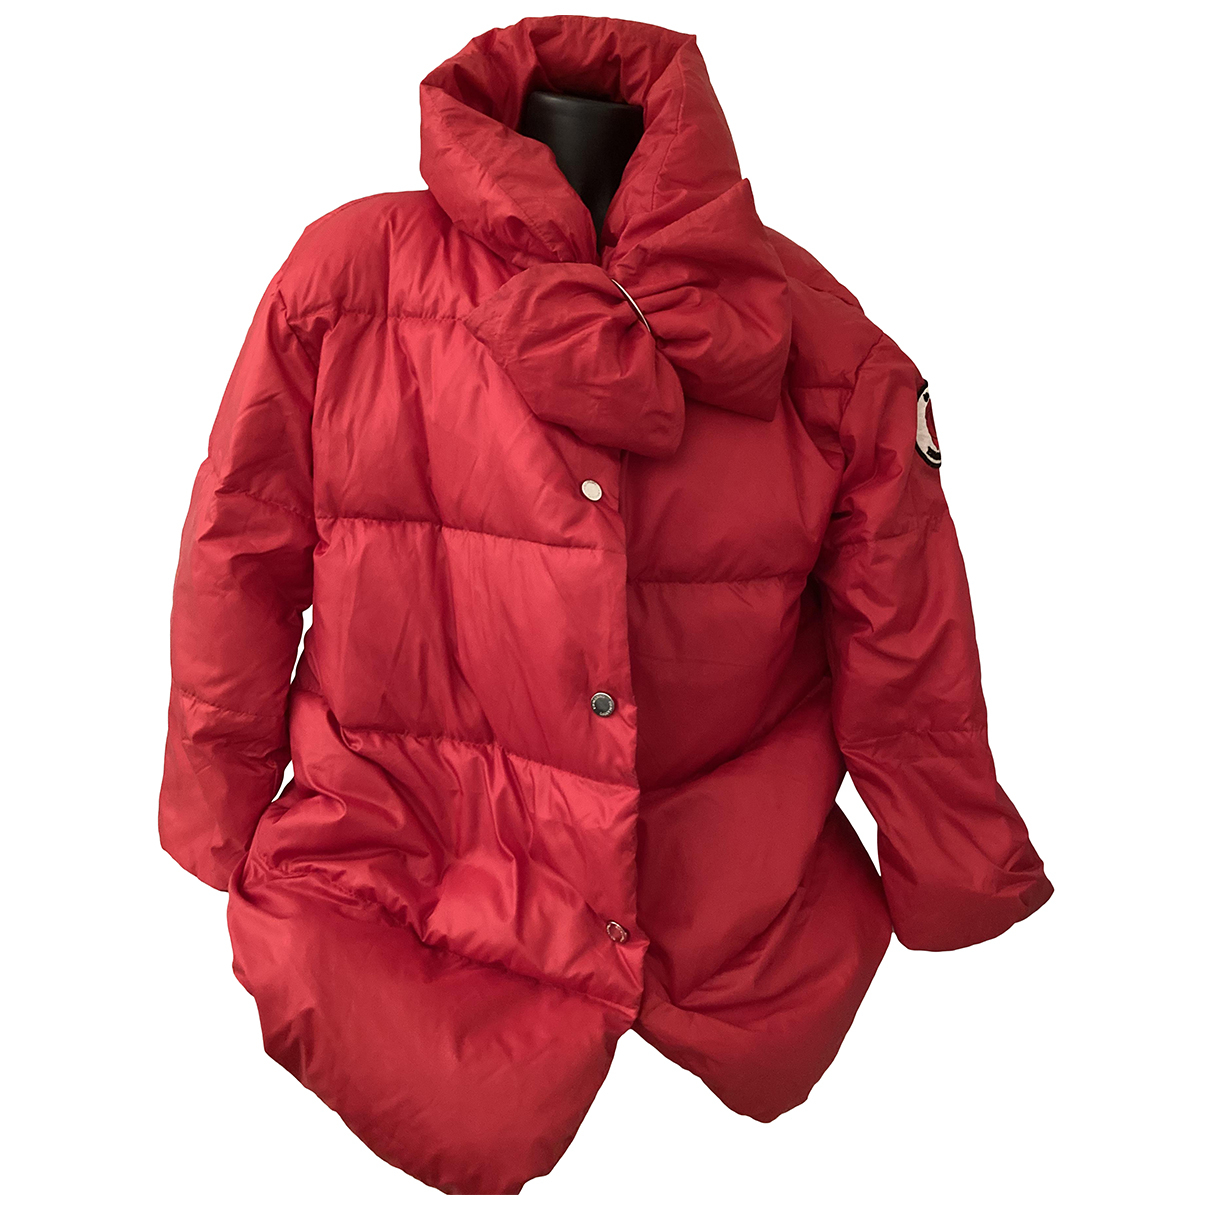 Ermanno Scervino N Red jacket for Women 40 FR